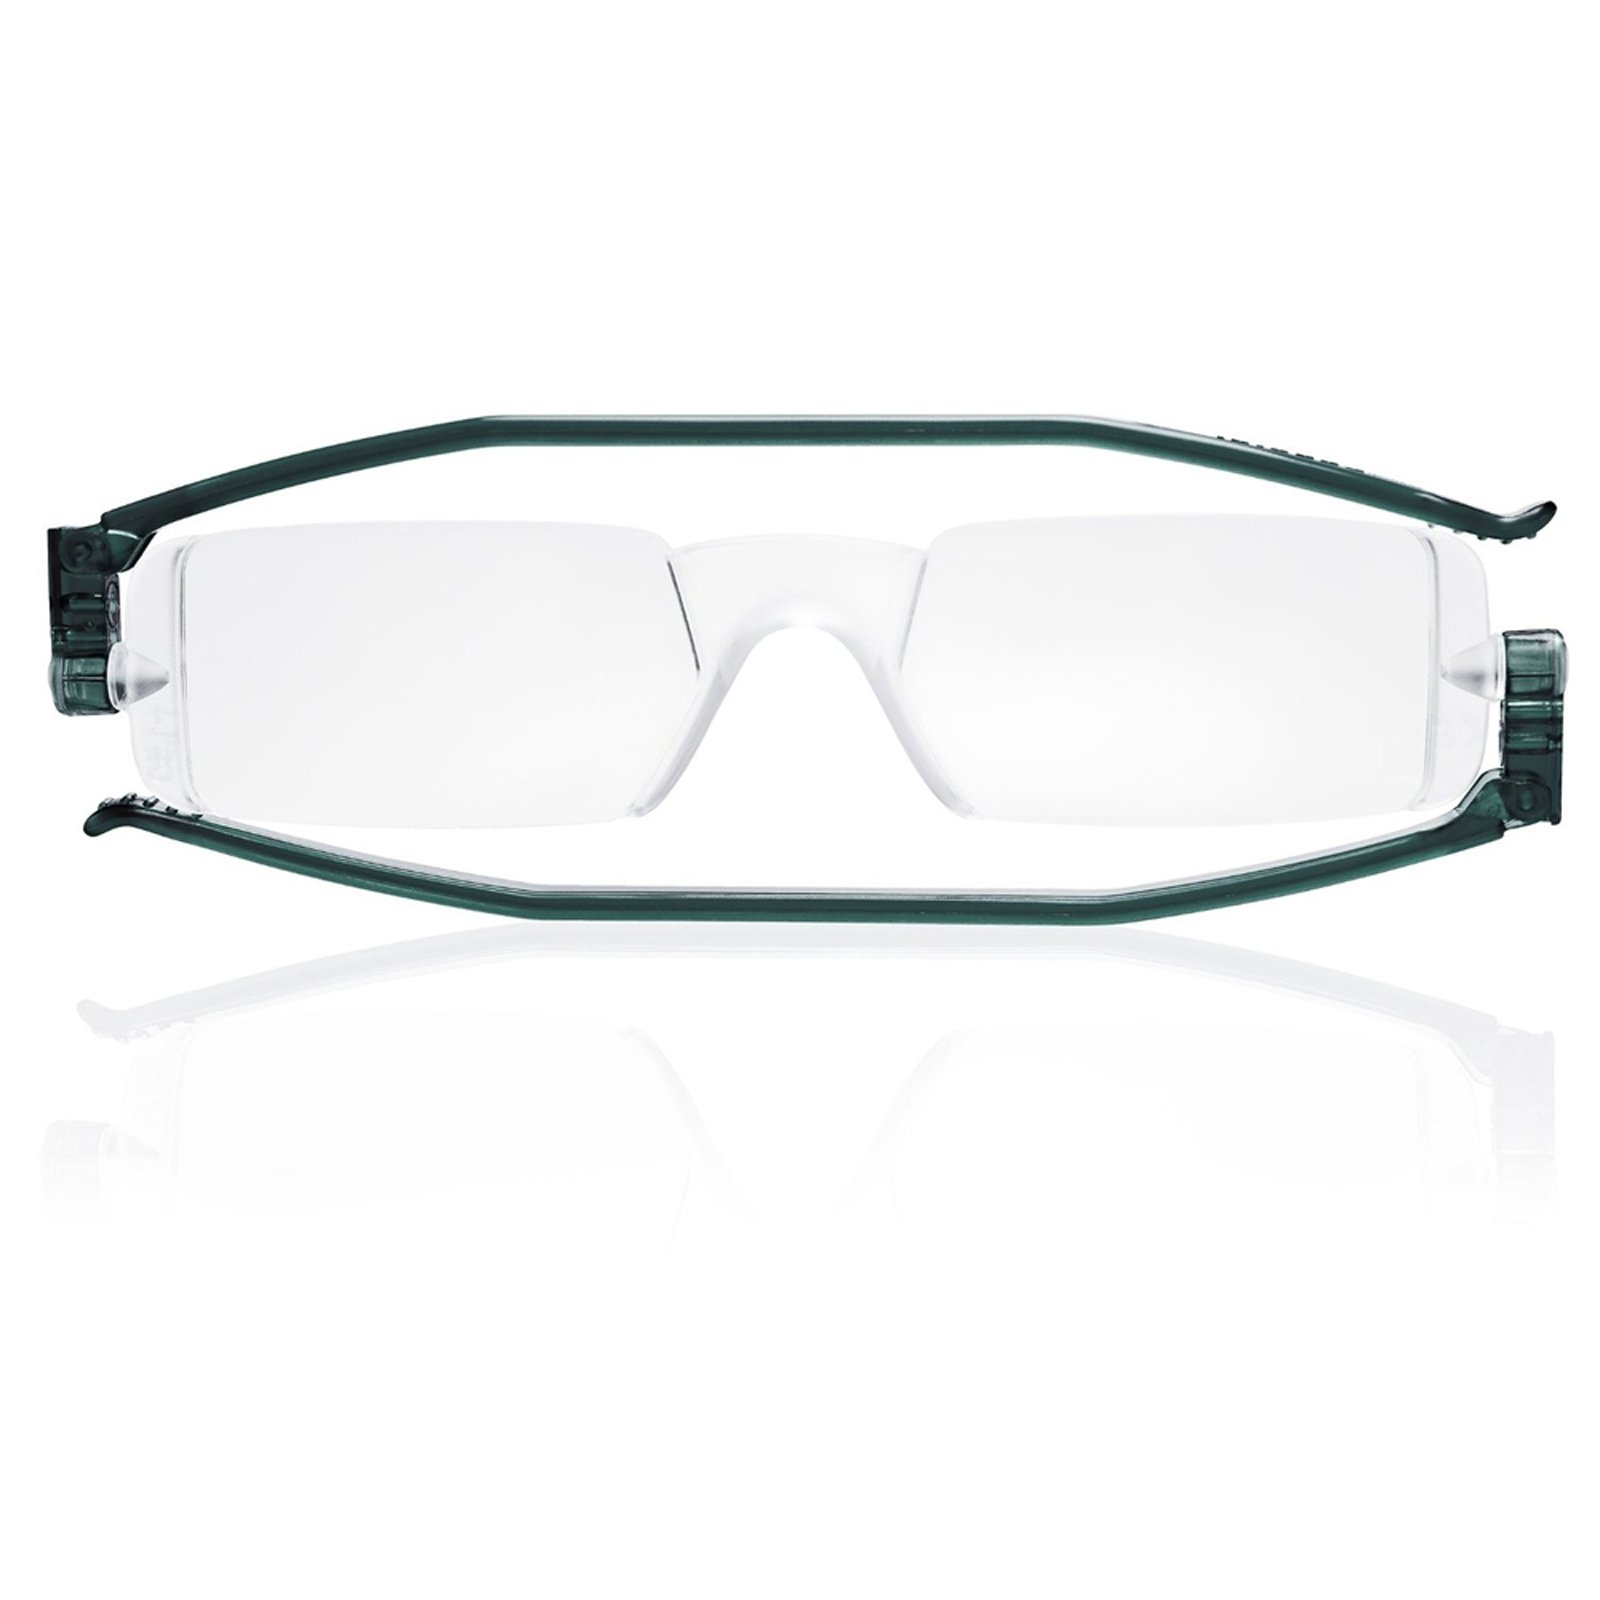 Reading Glasses Nannini Italy Vision Care Unisex Ultra Thin Readers - Grey 3.0